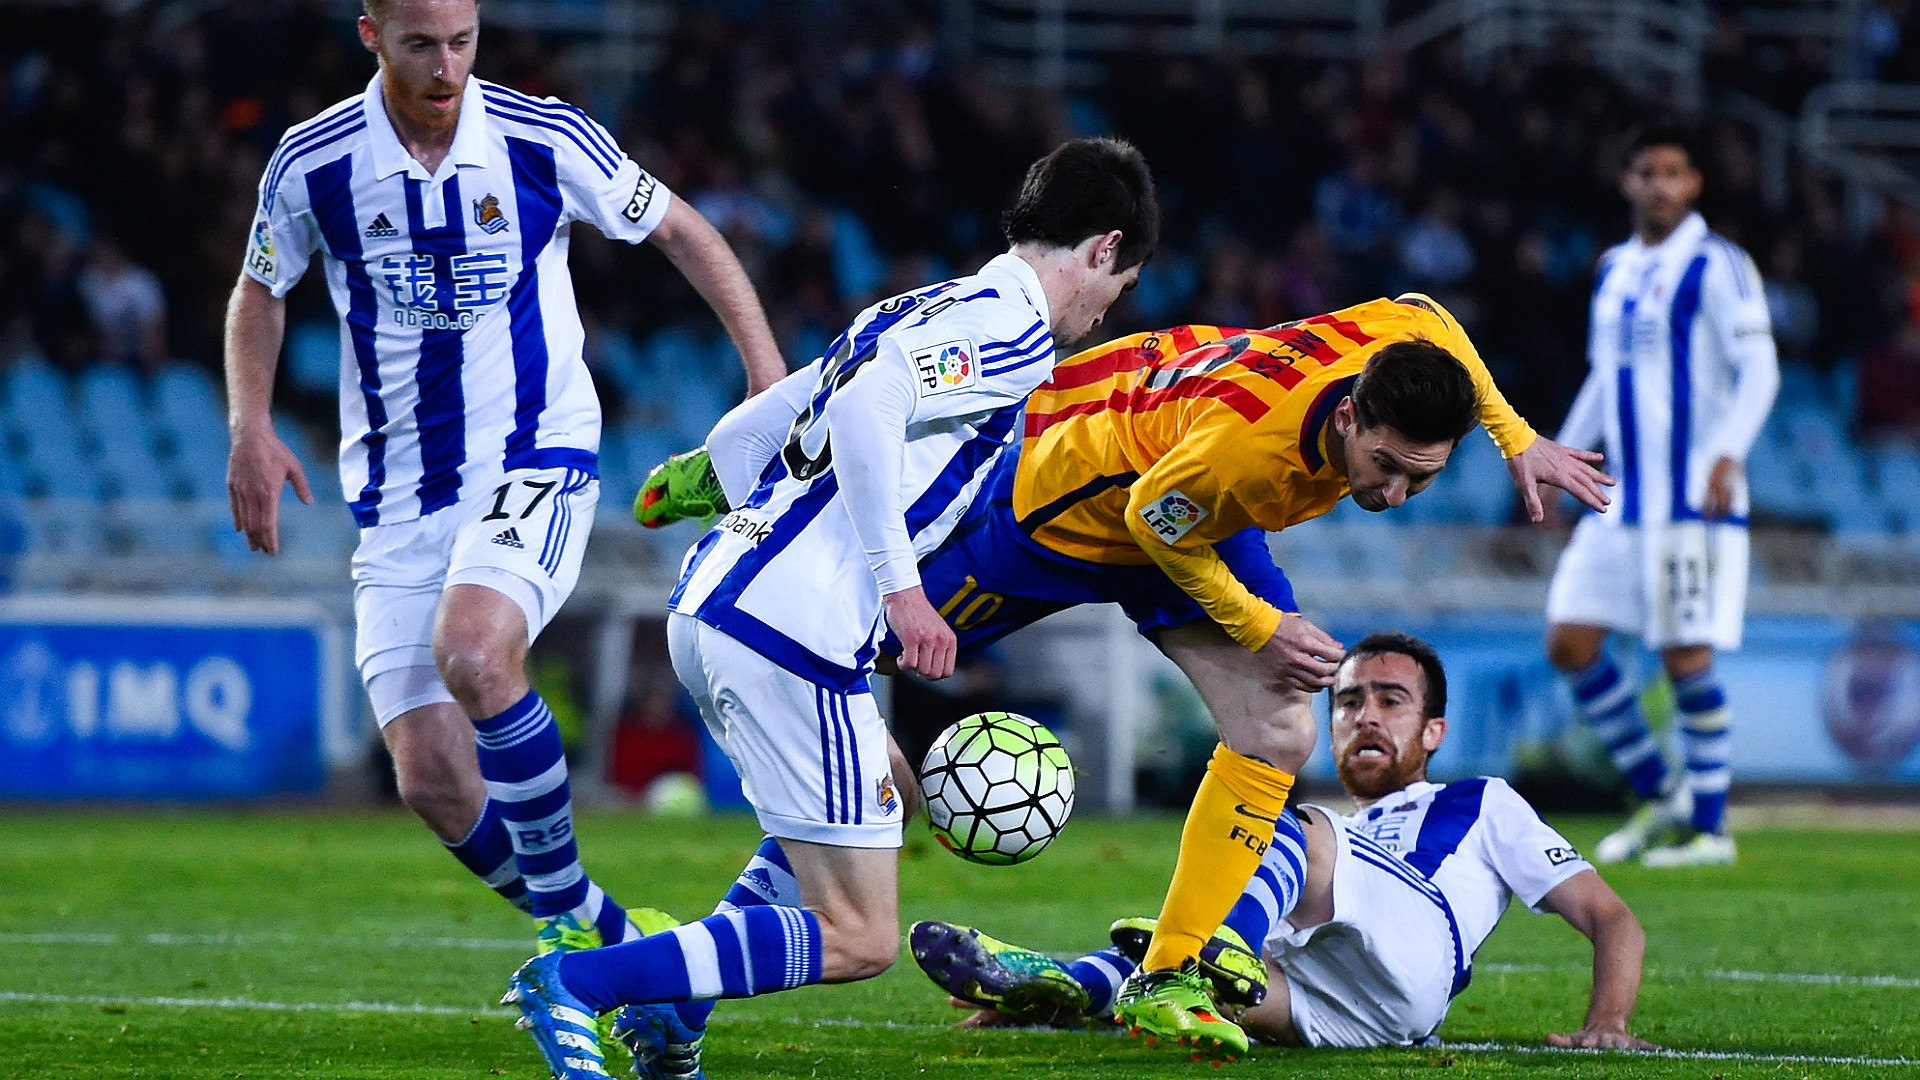 Video: Real Sociedad vs Barcelona